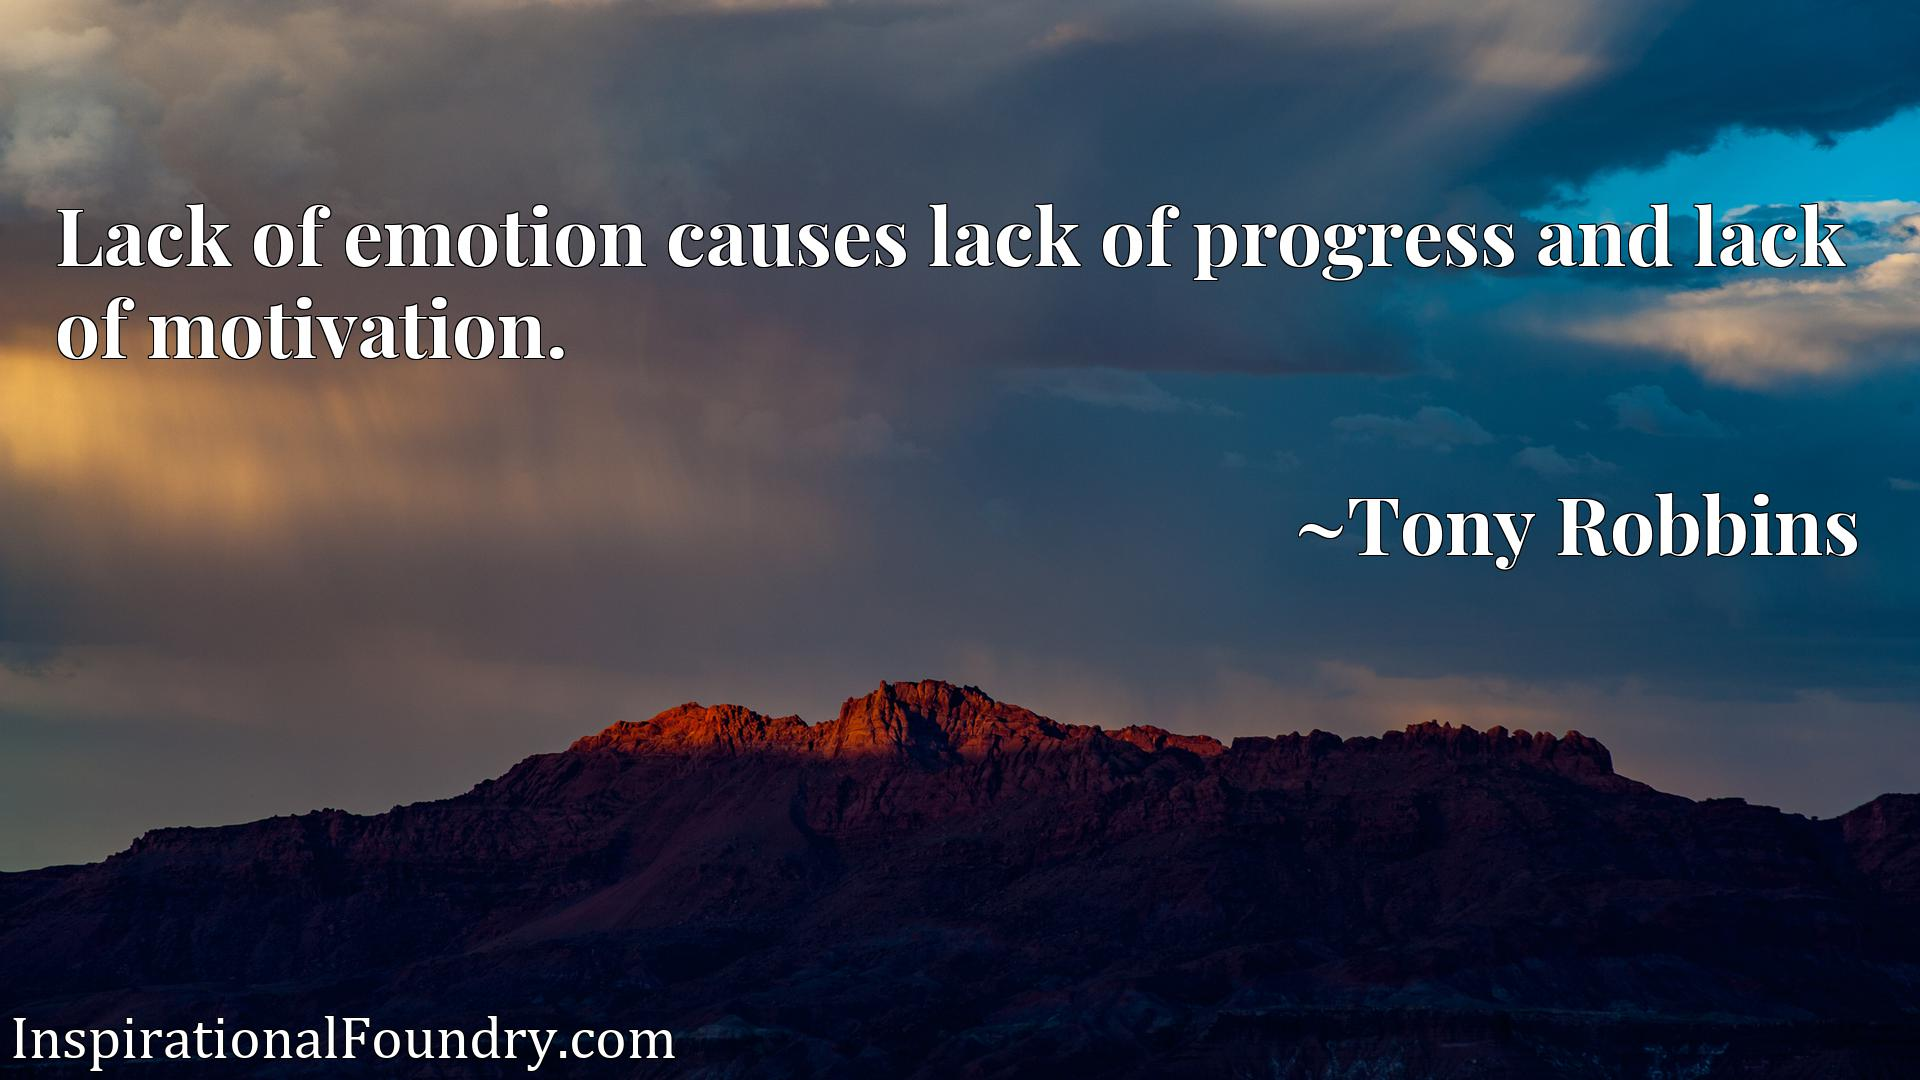 Lack of emotion causes lack of progress and lack of motivation.